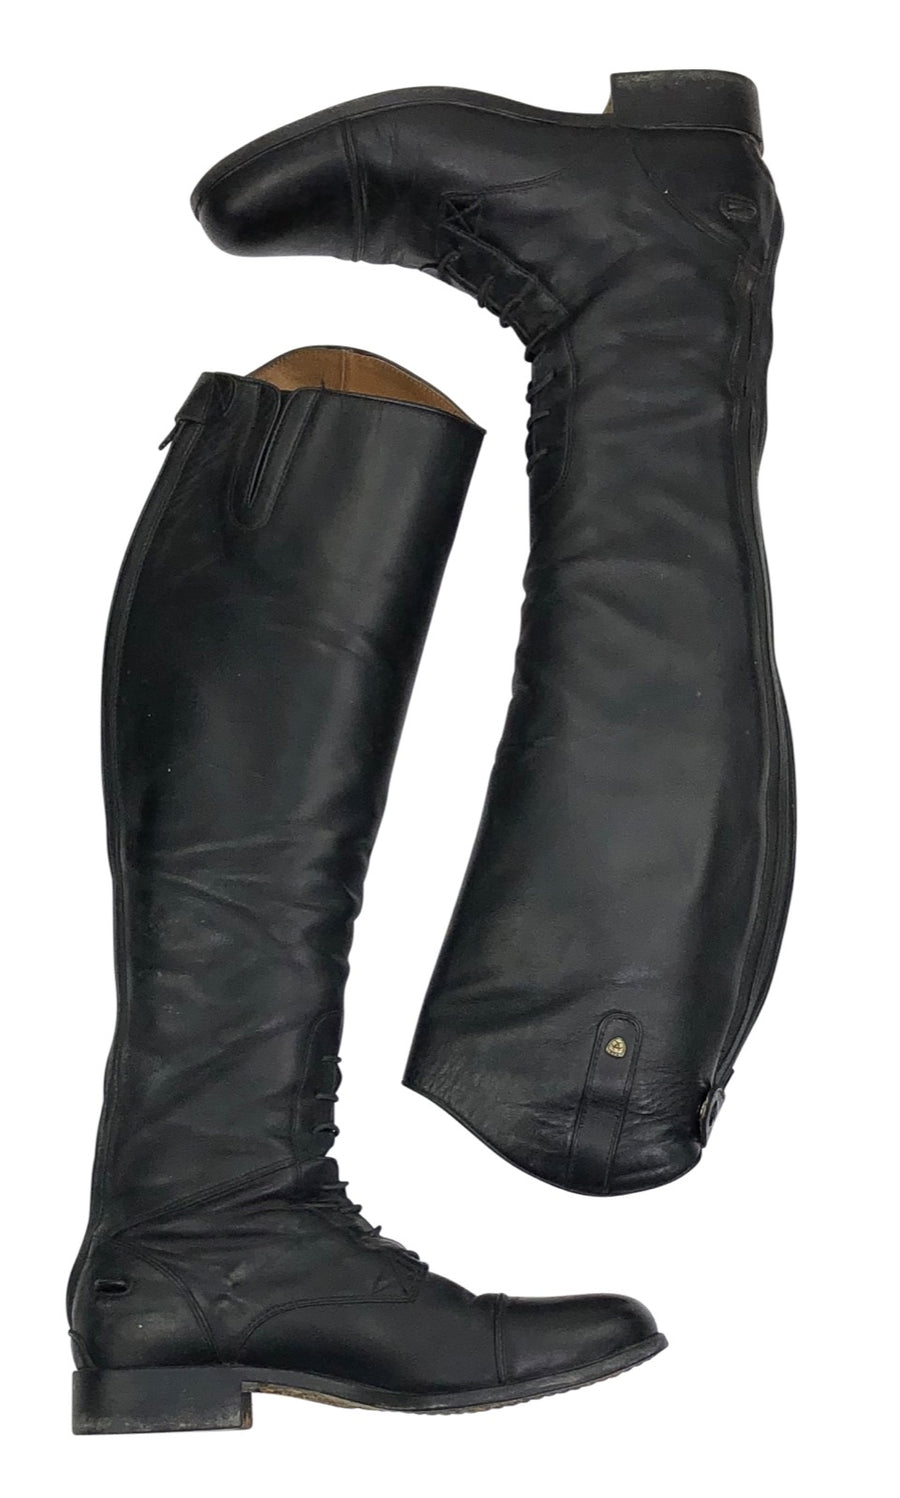 Ariat Heritage Contour Field Zip Tall Riding Boot in Black - Women's 11 Reg/Tall